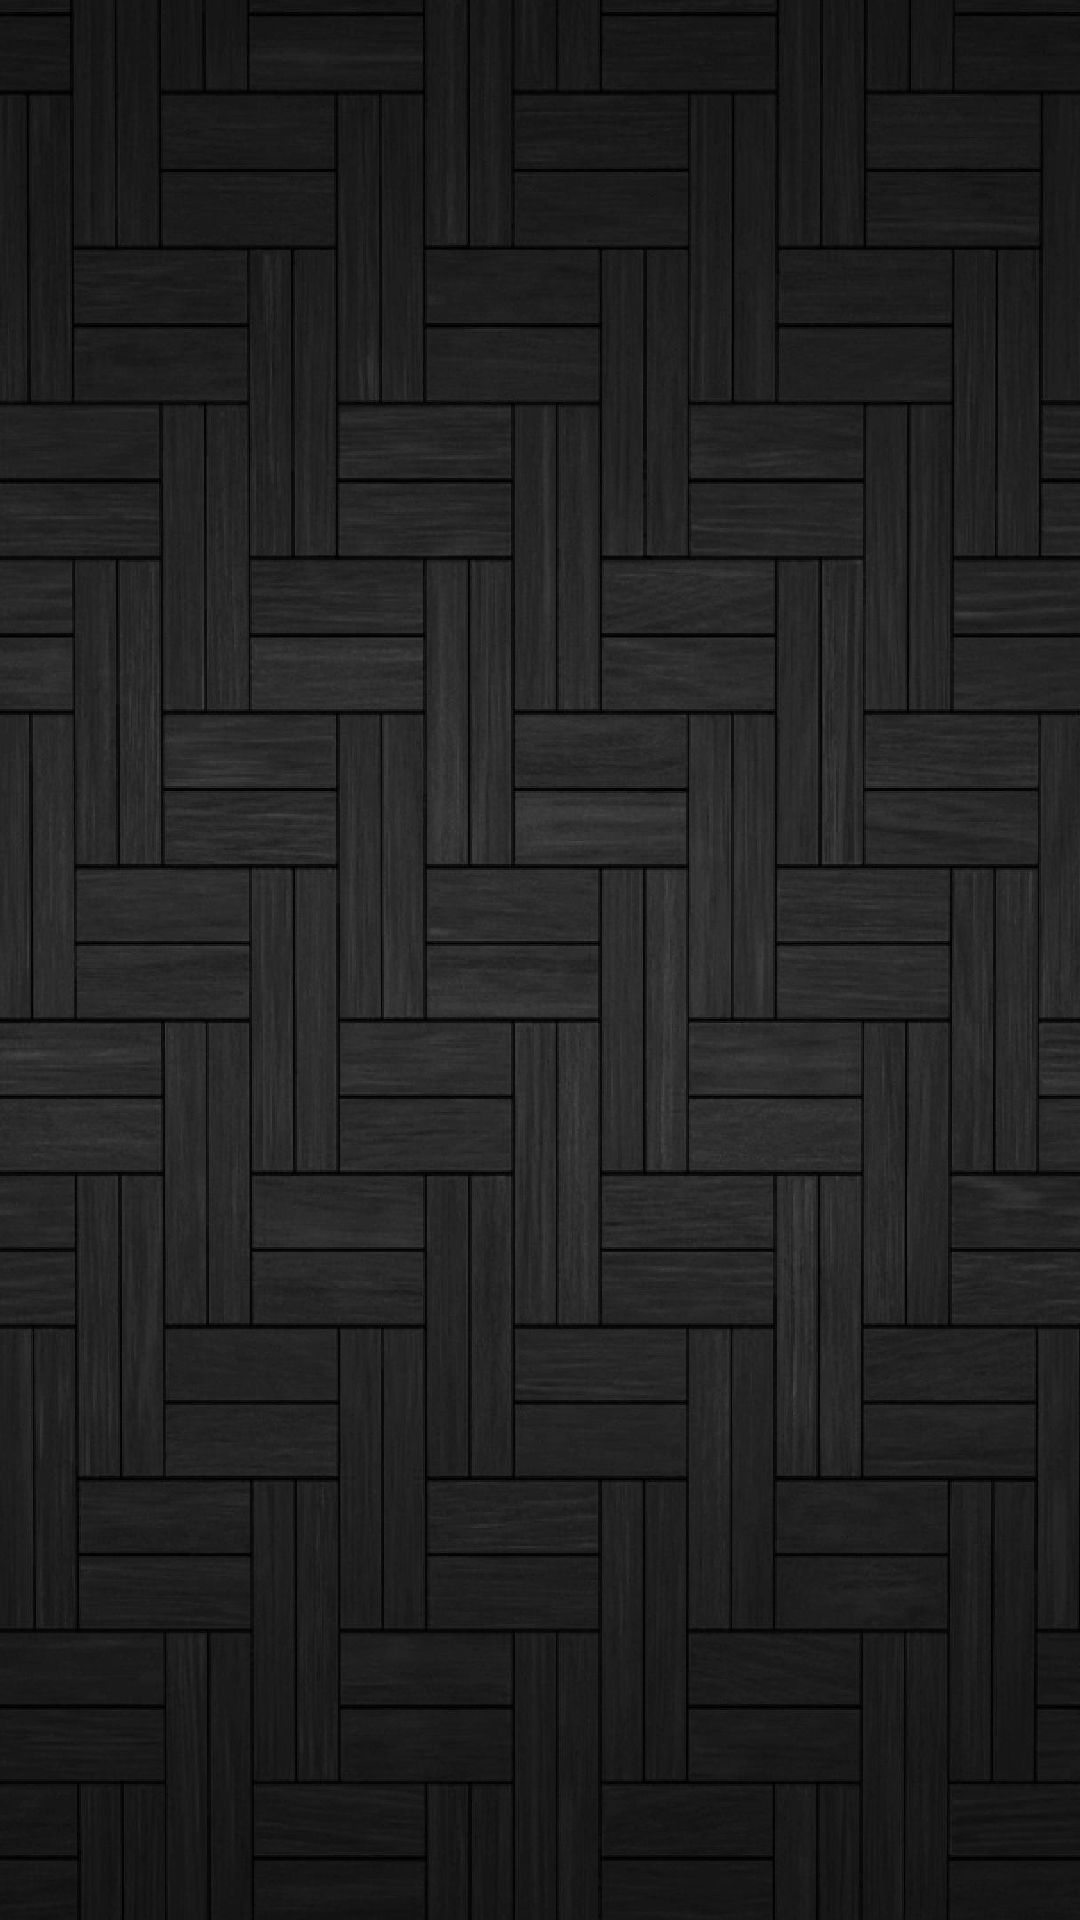 Wood dark background texture wallpaper background iphone 6 - Ipad Background